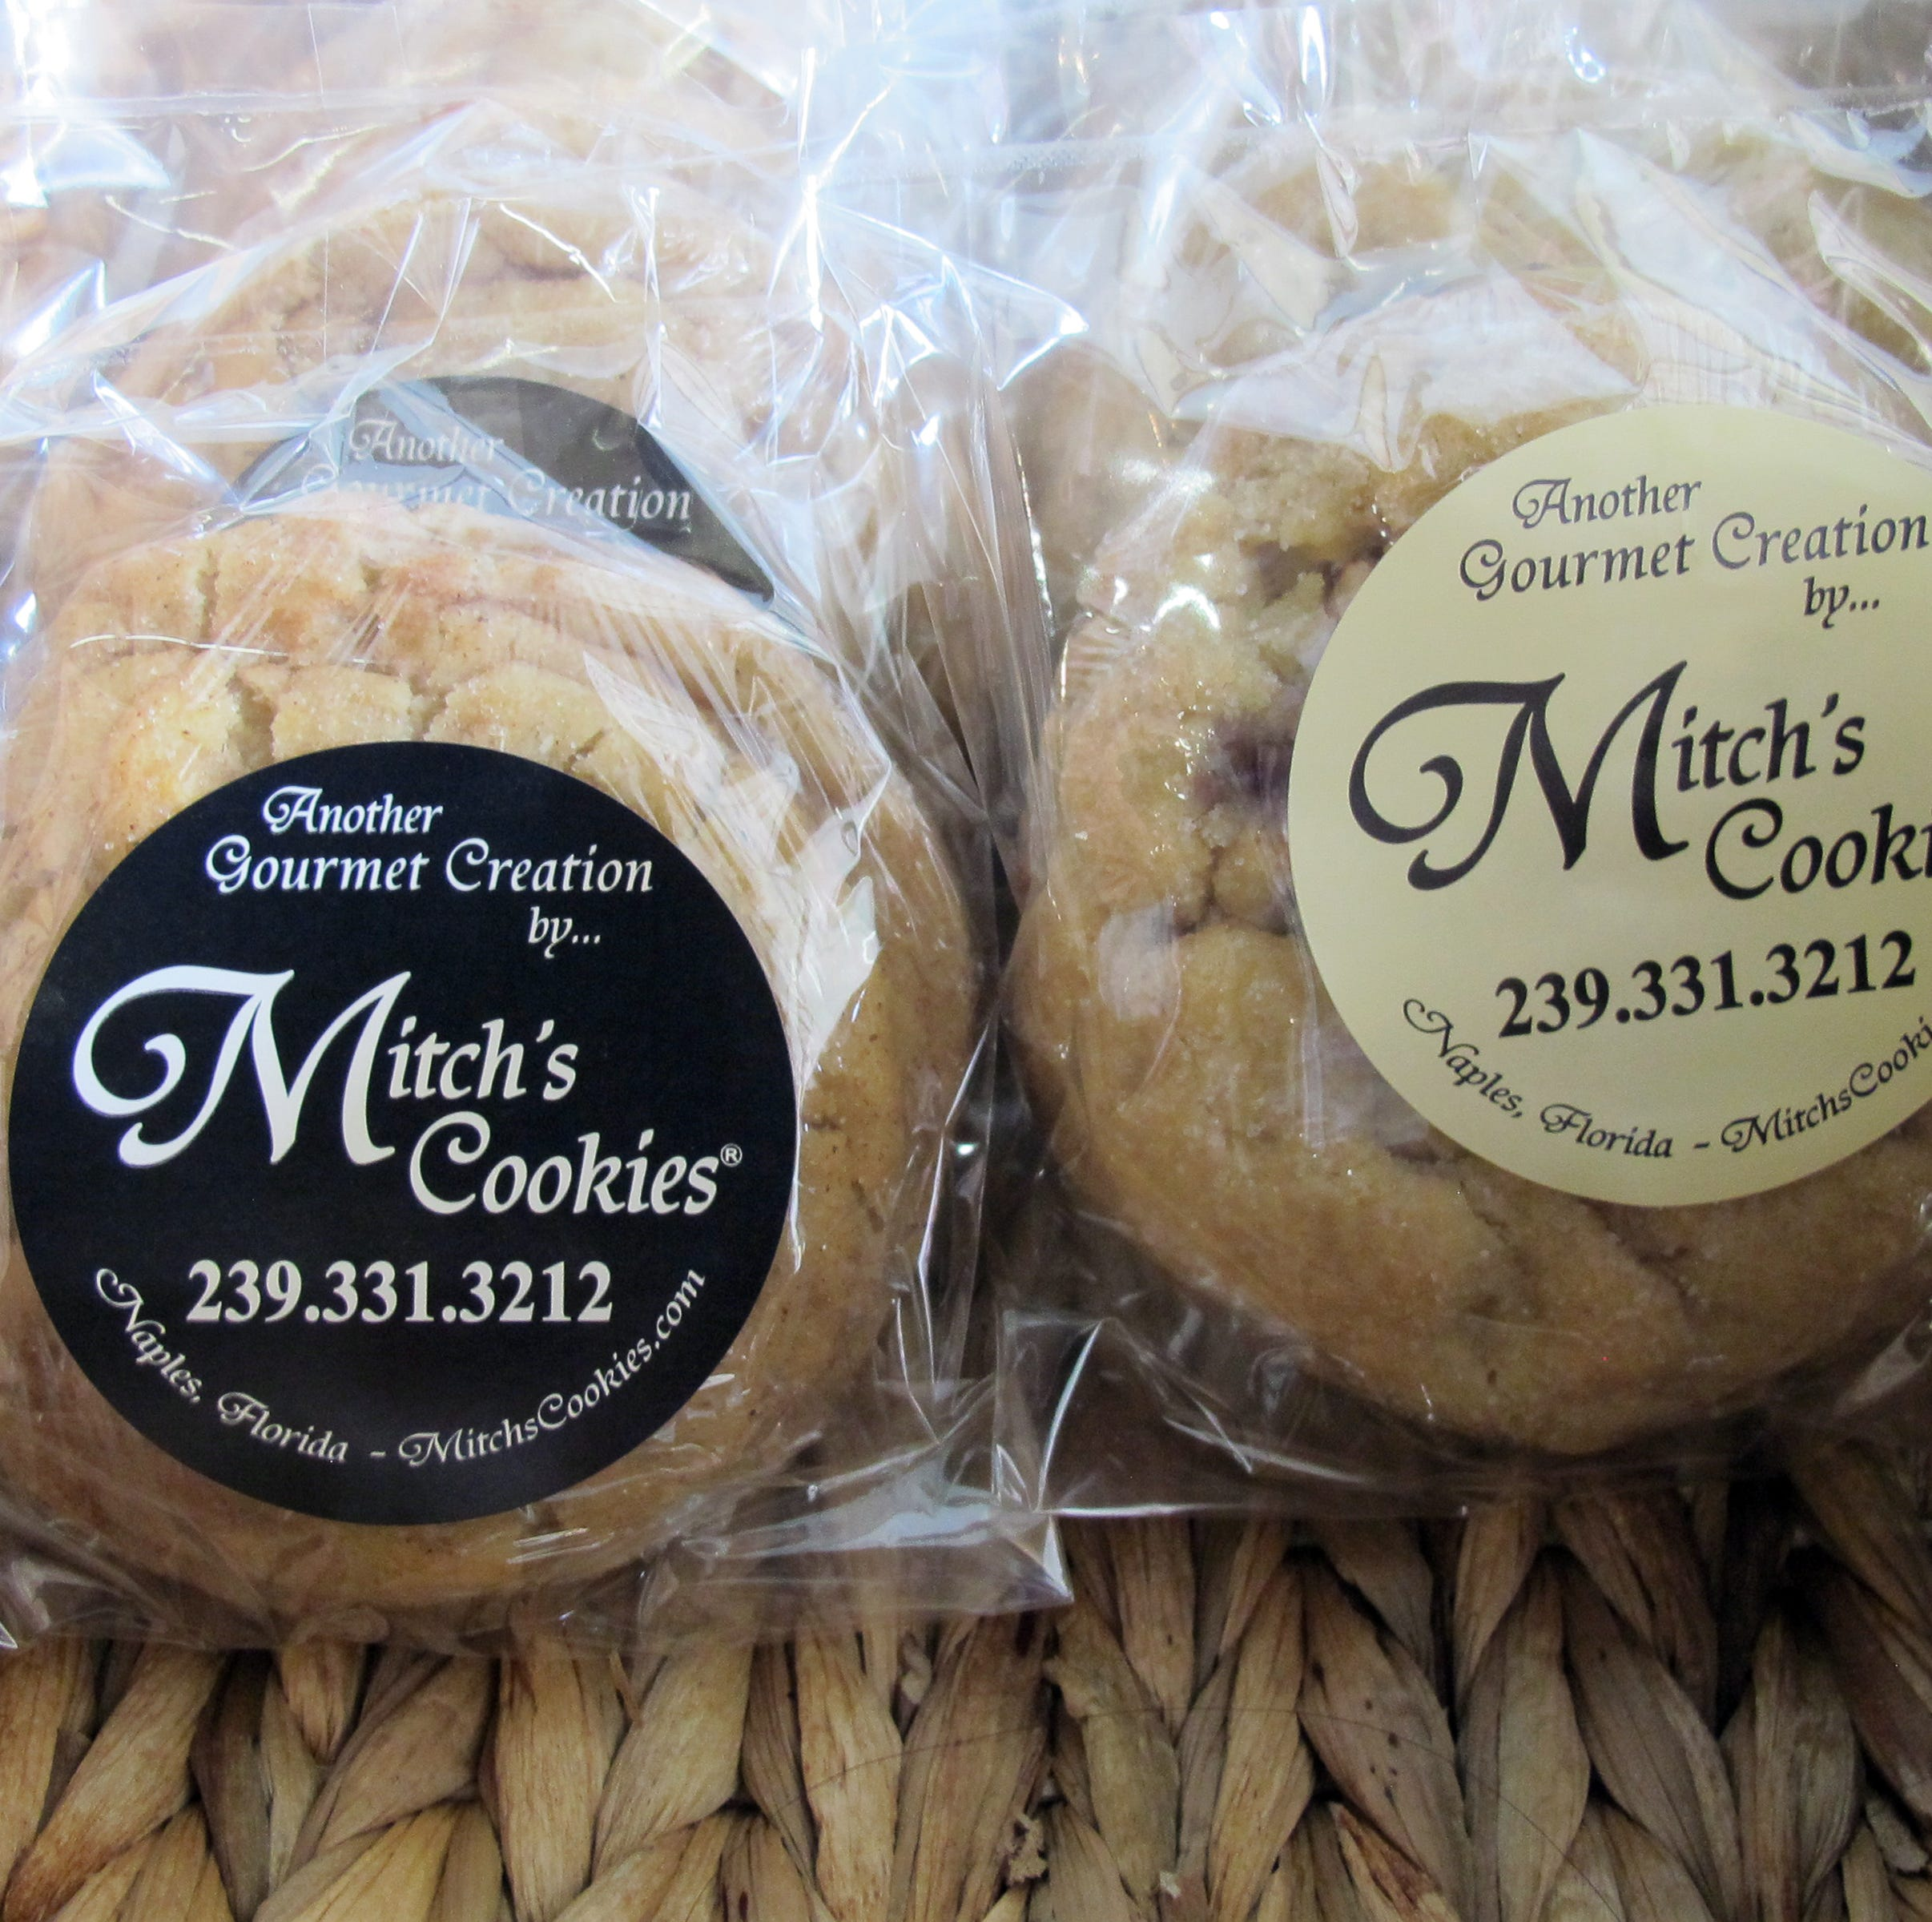 In the Know: Mitch's Cookies launches new dessert bar in East Naples